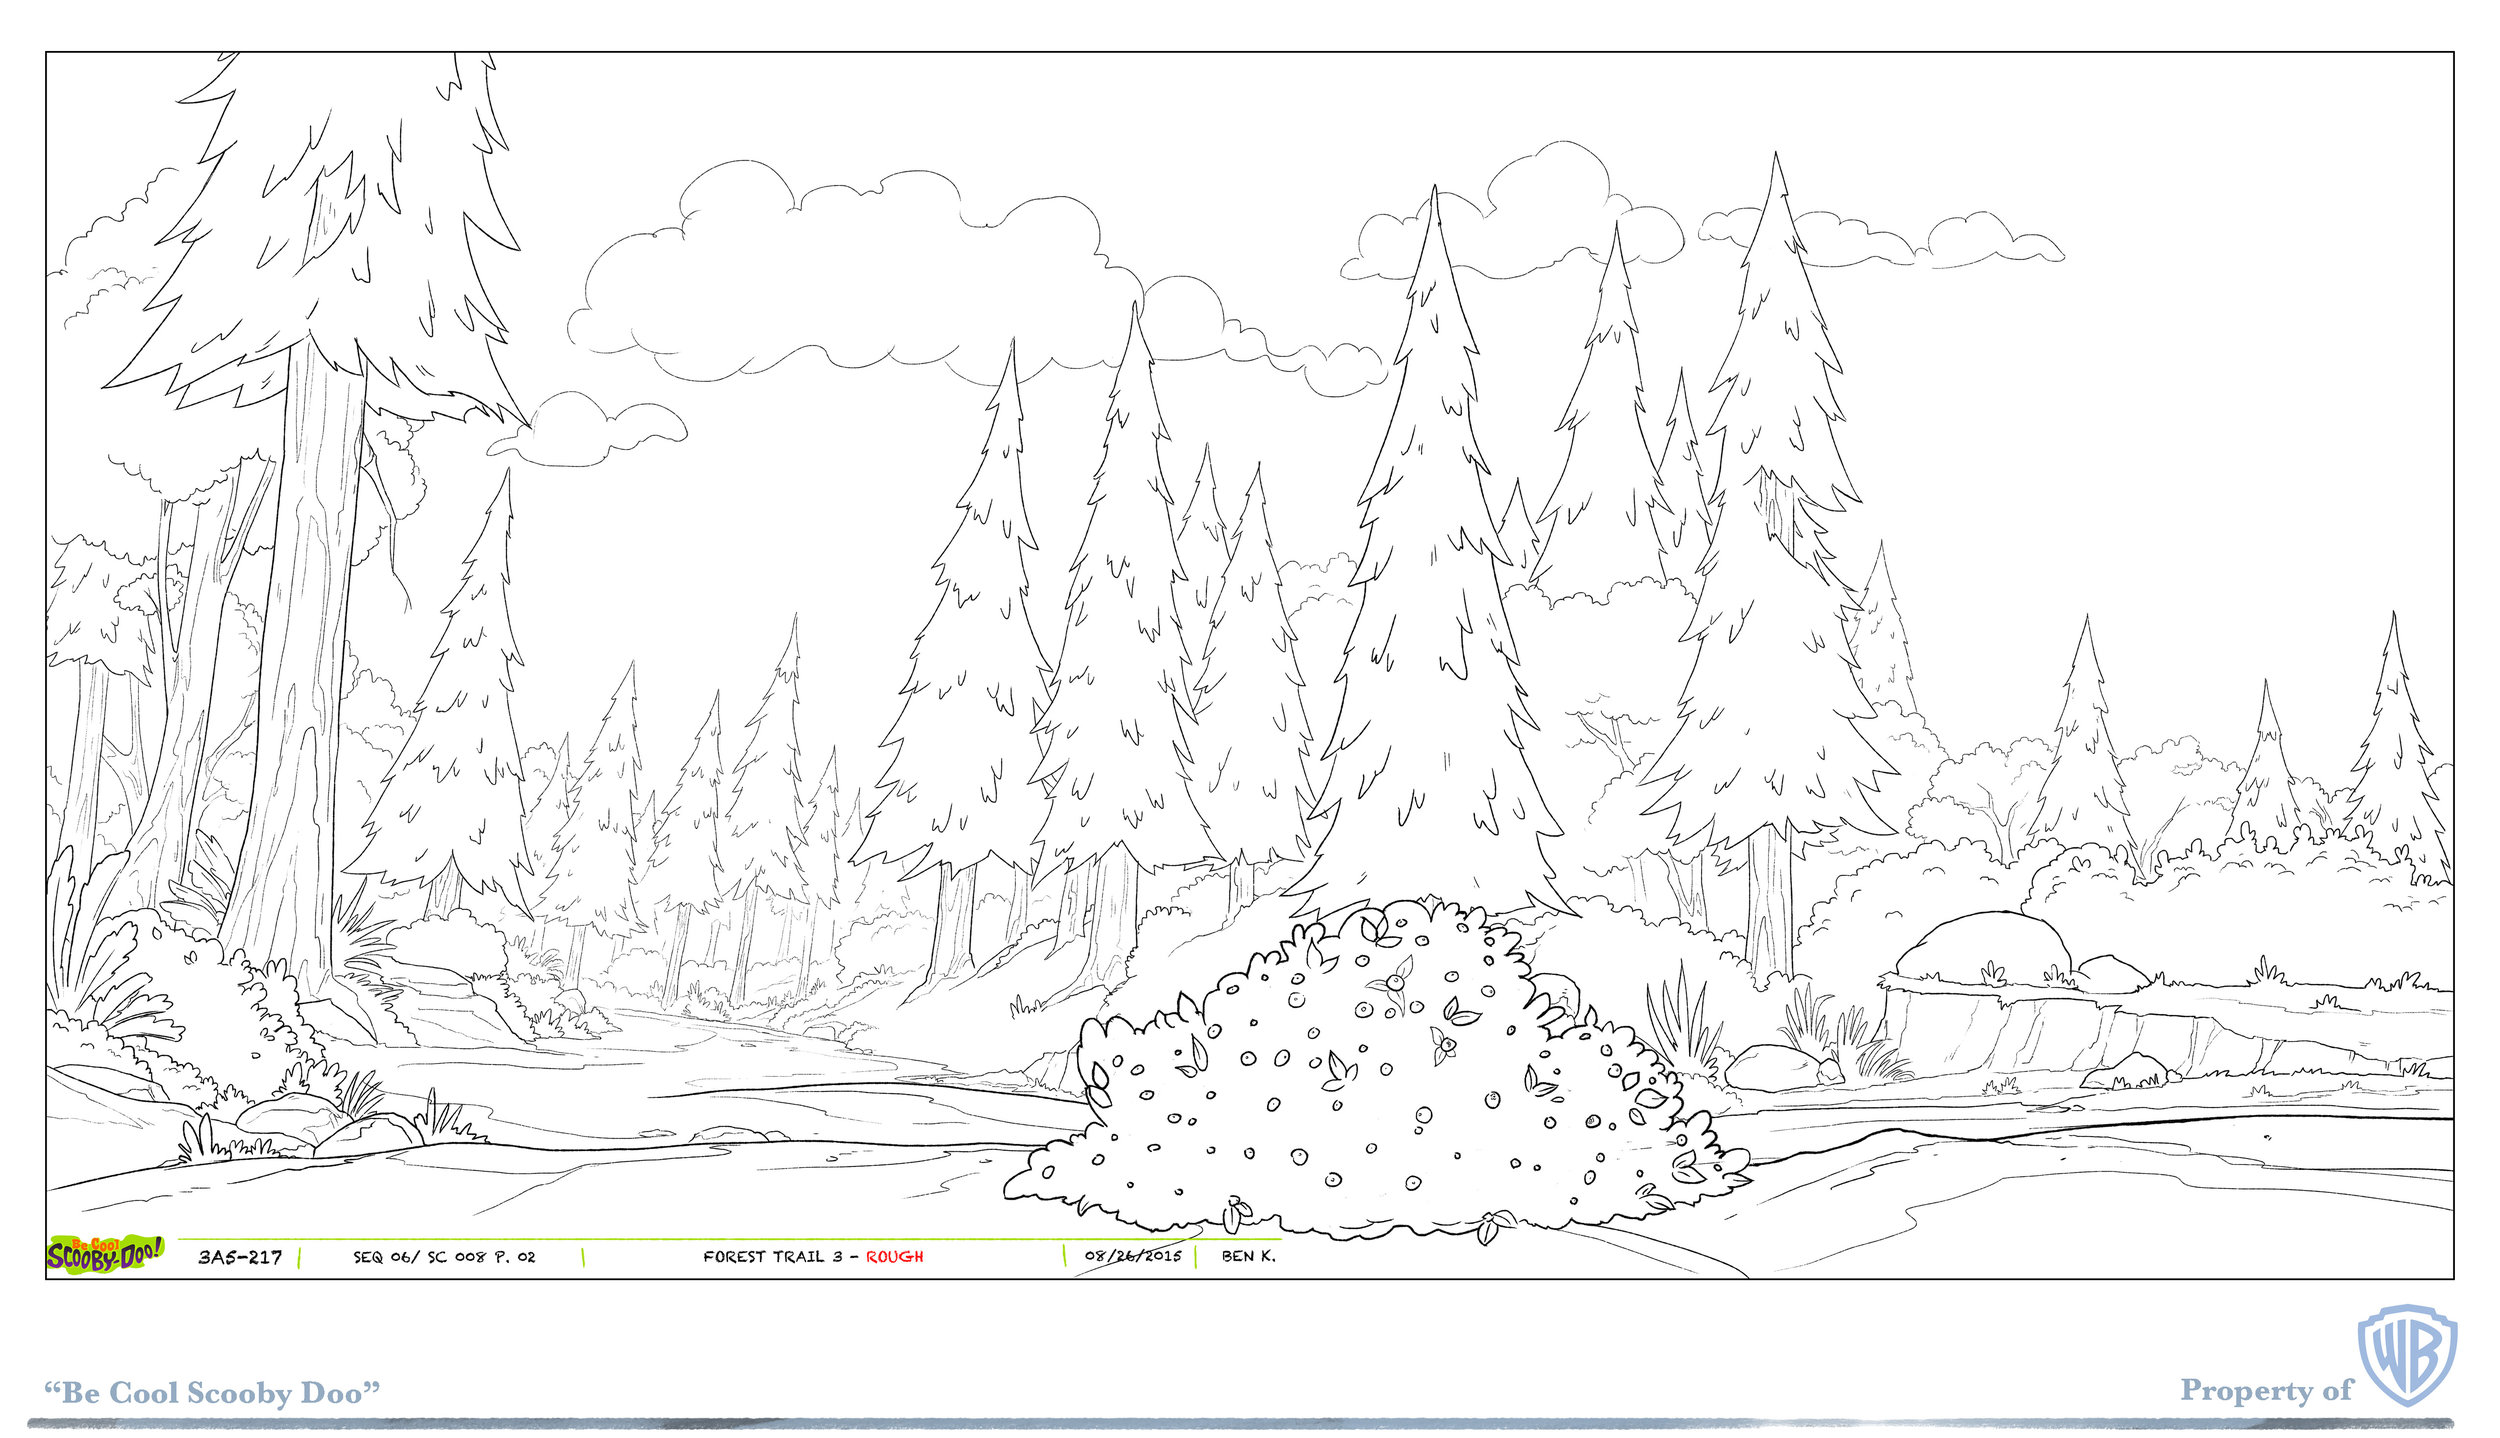 layout pages_bcsd-003.jpg